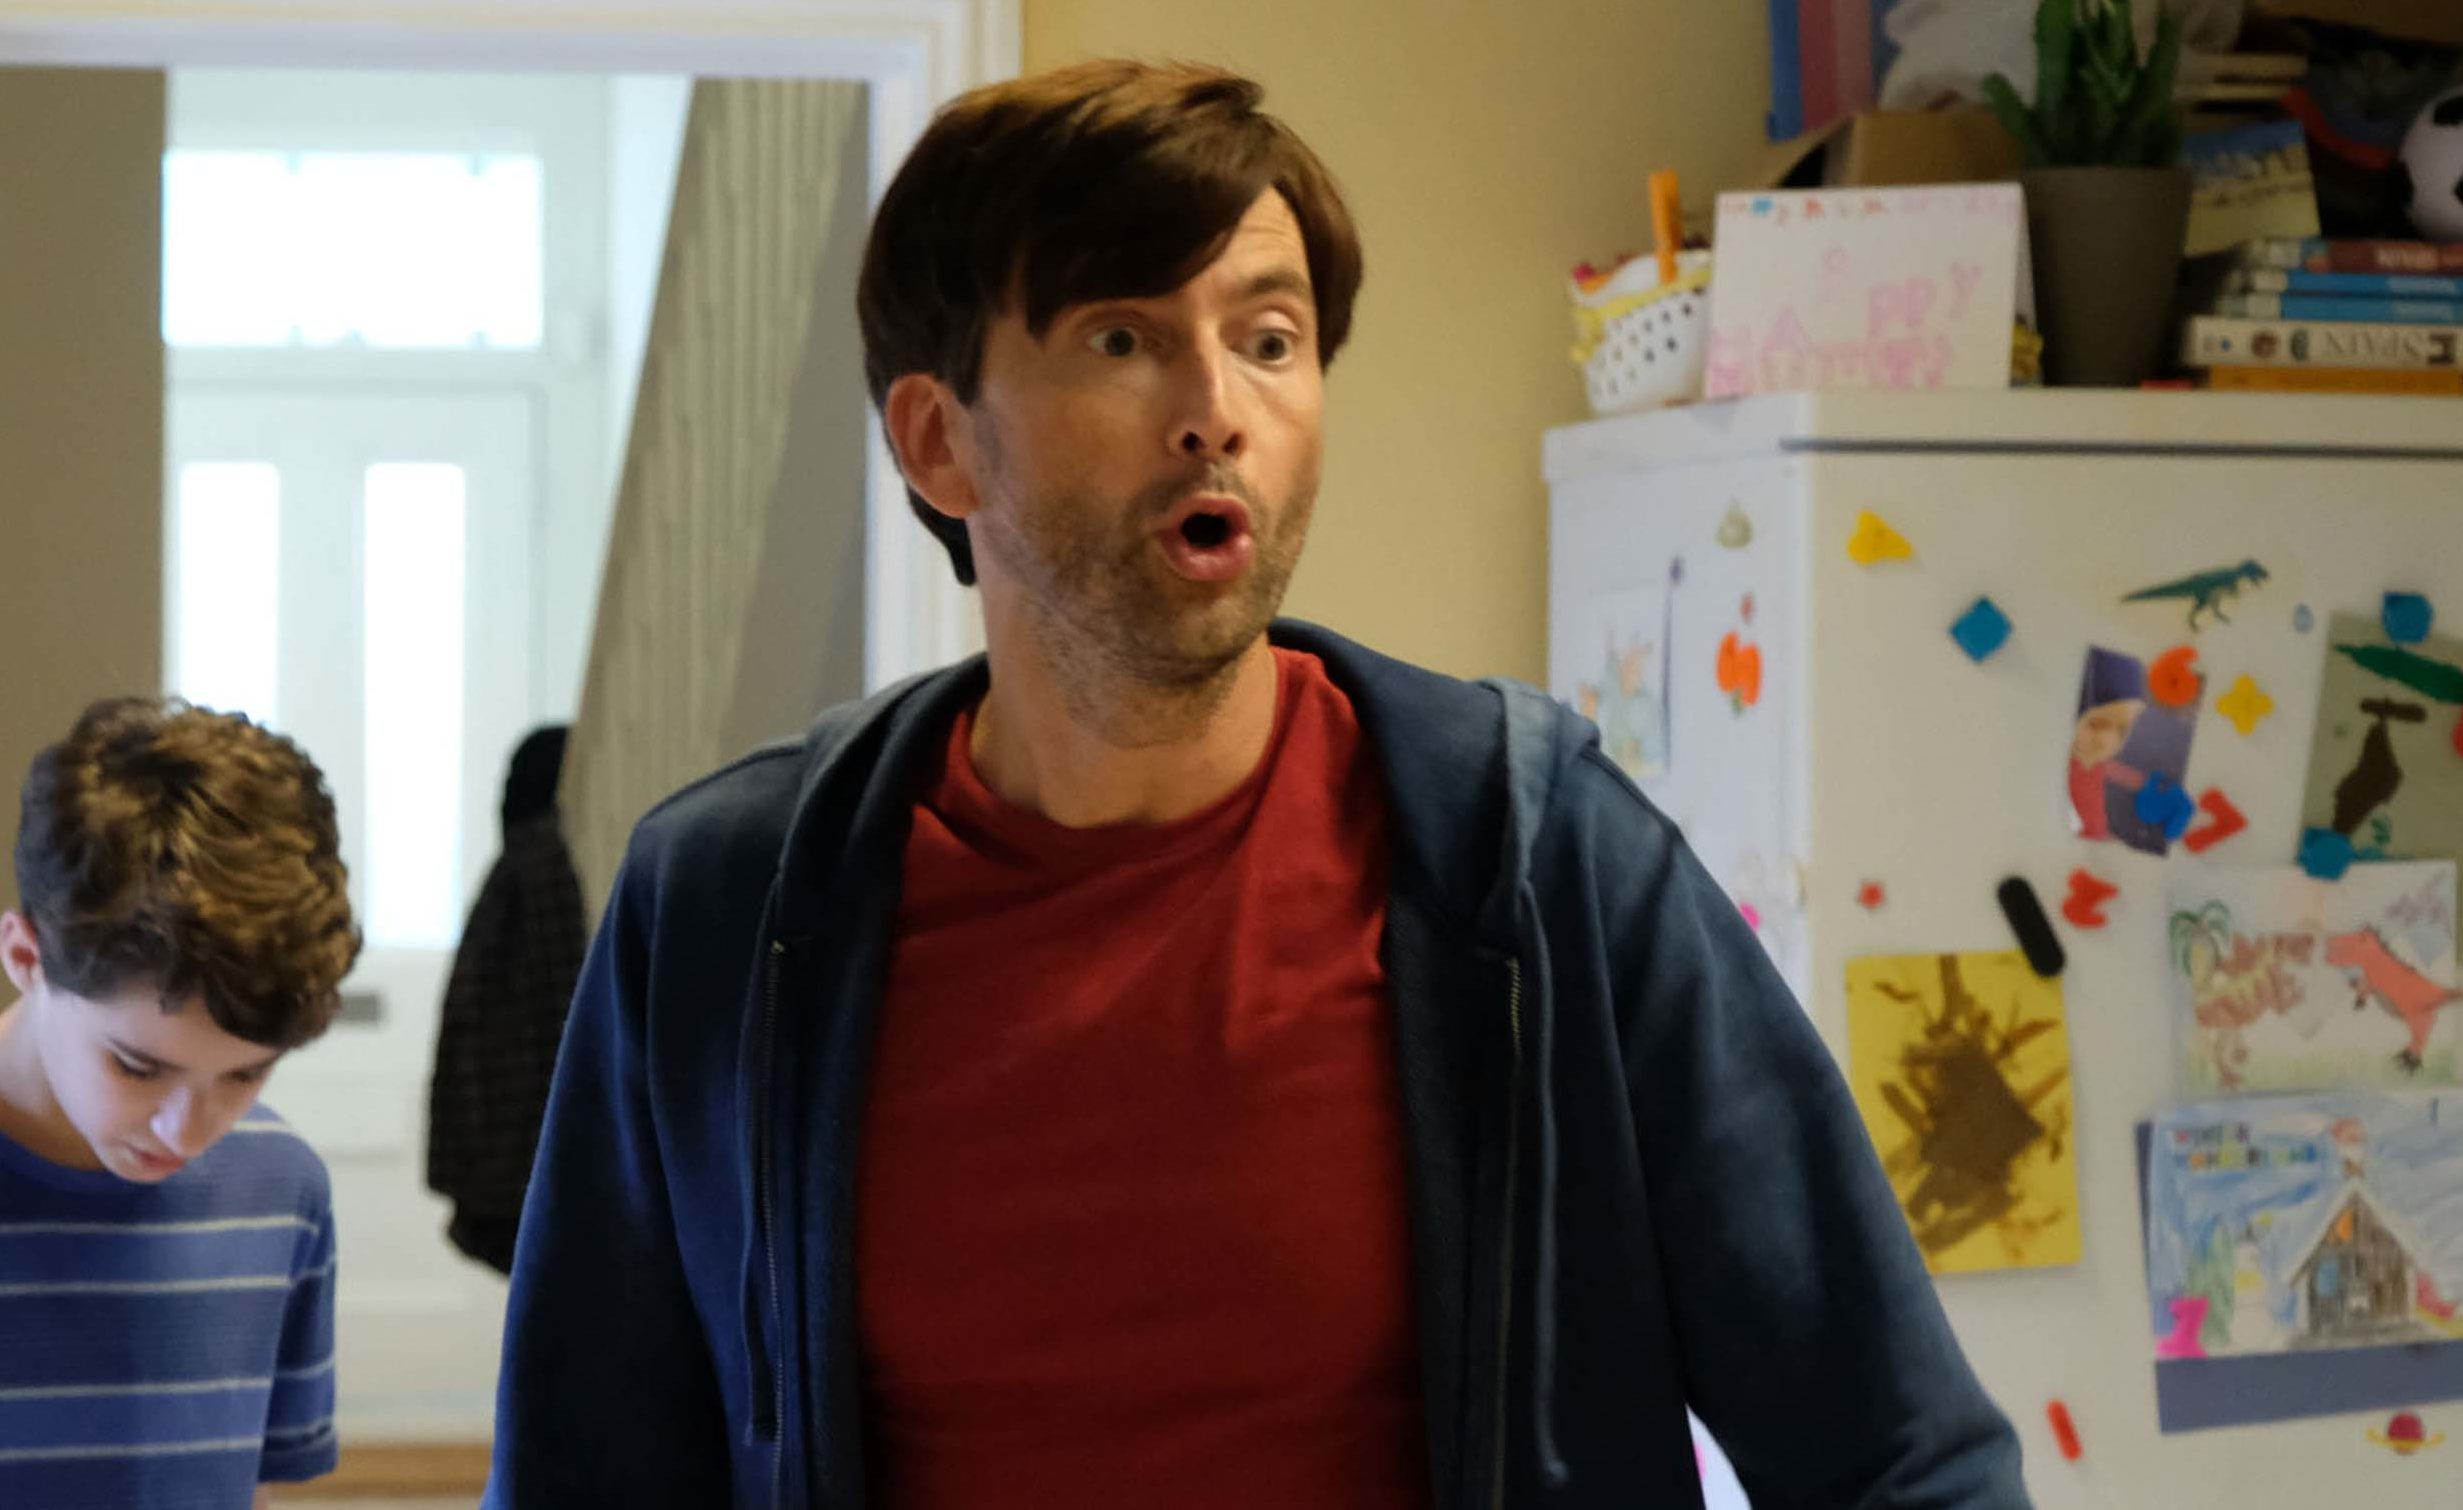 David Tennant in There She Goes (Merman Productions / BBC / Kevin Baker)